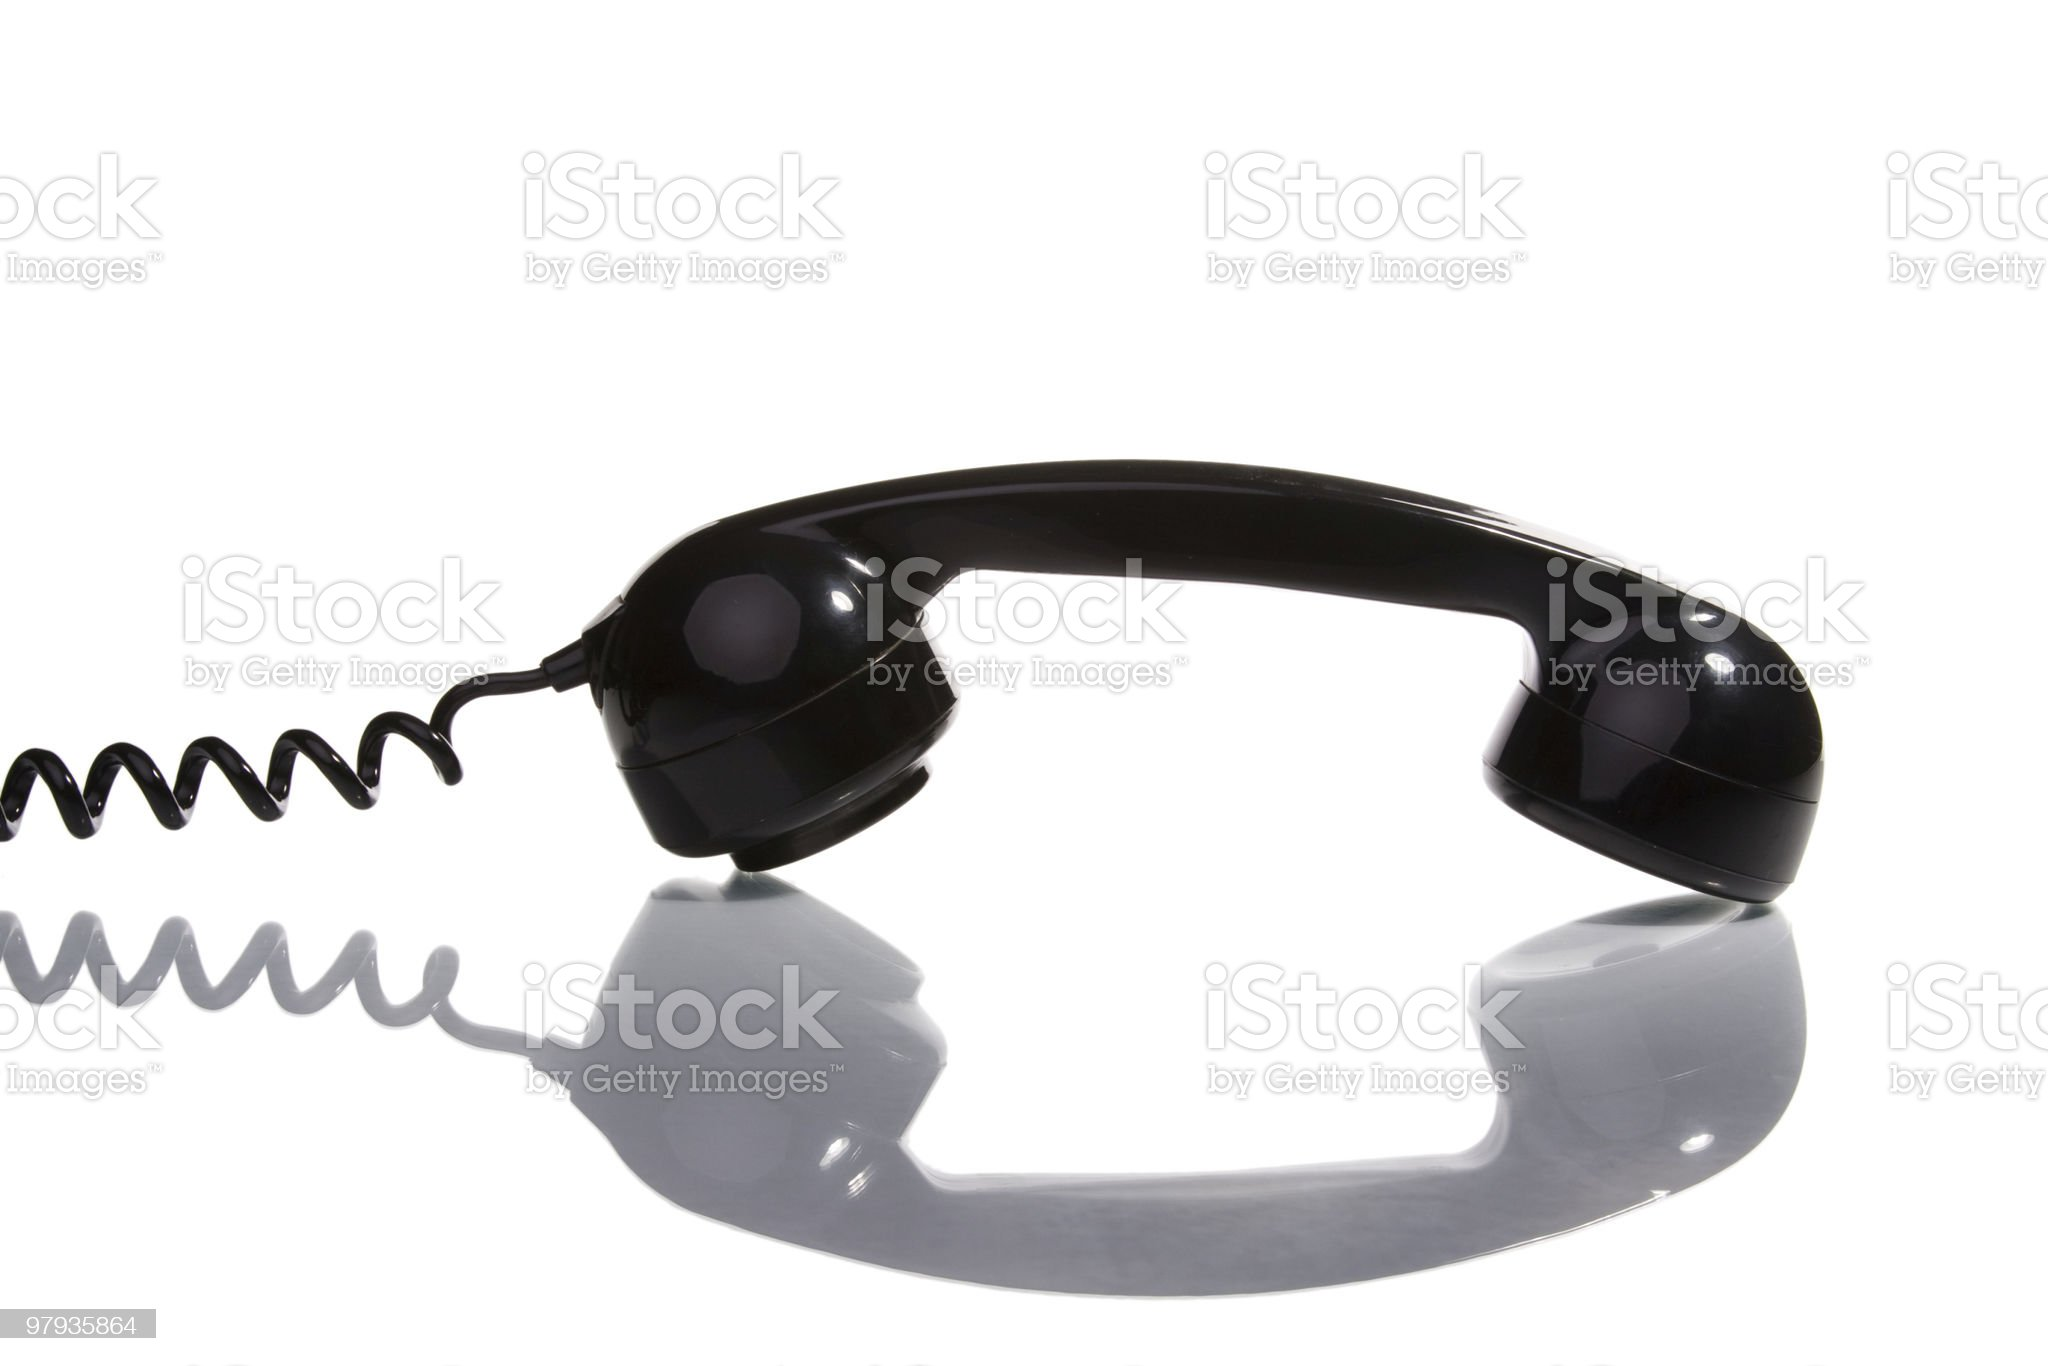 Old telephone handset royalty-free stock photo